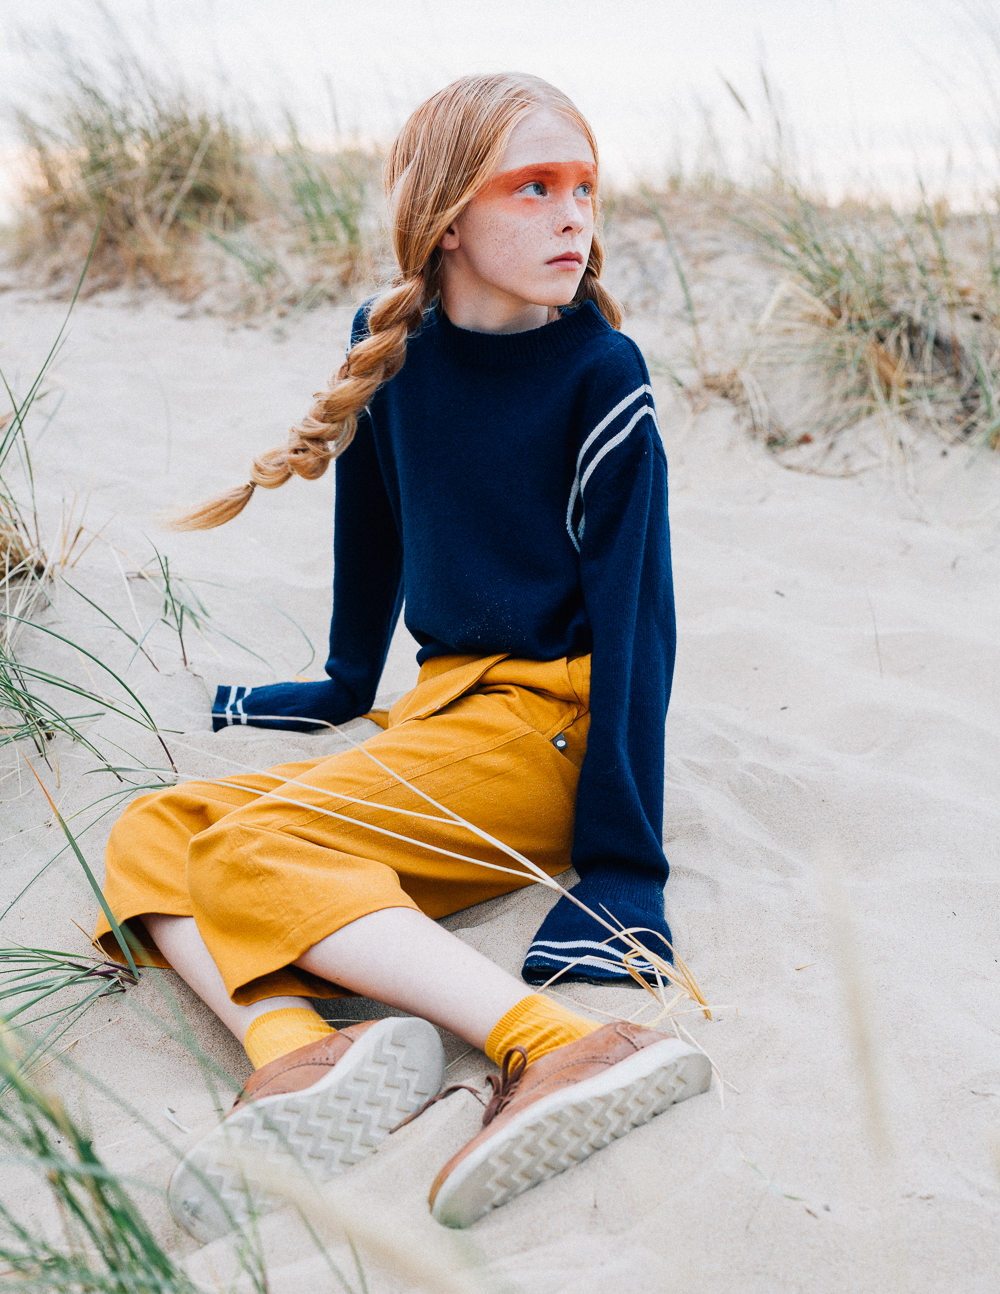 BABIEKINS MAGAZINE | Summer's Gone // Autumn Color Palette for Kids